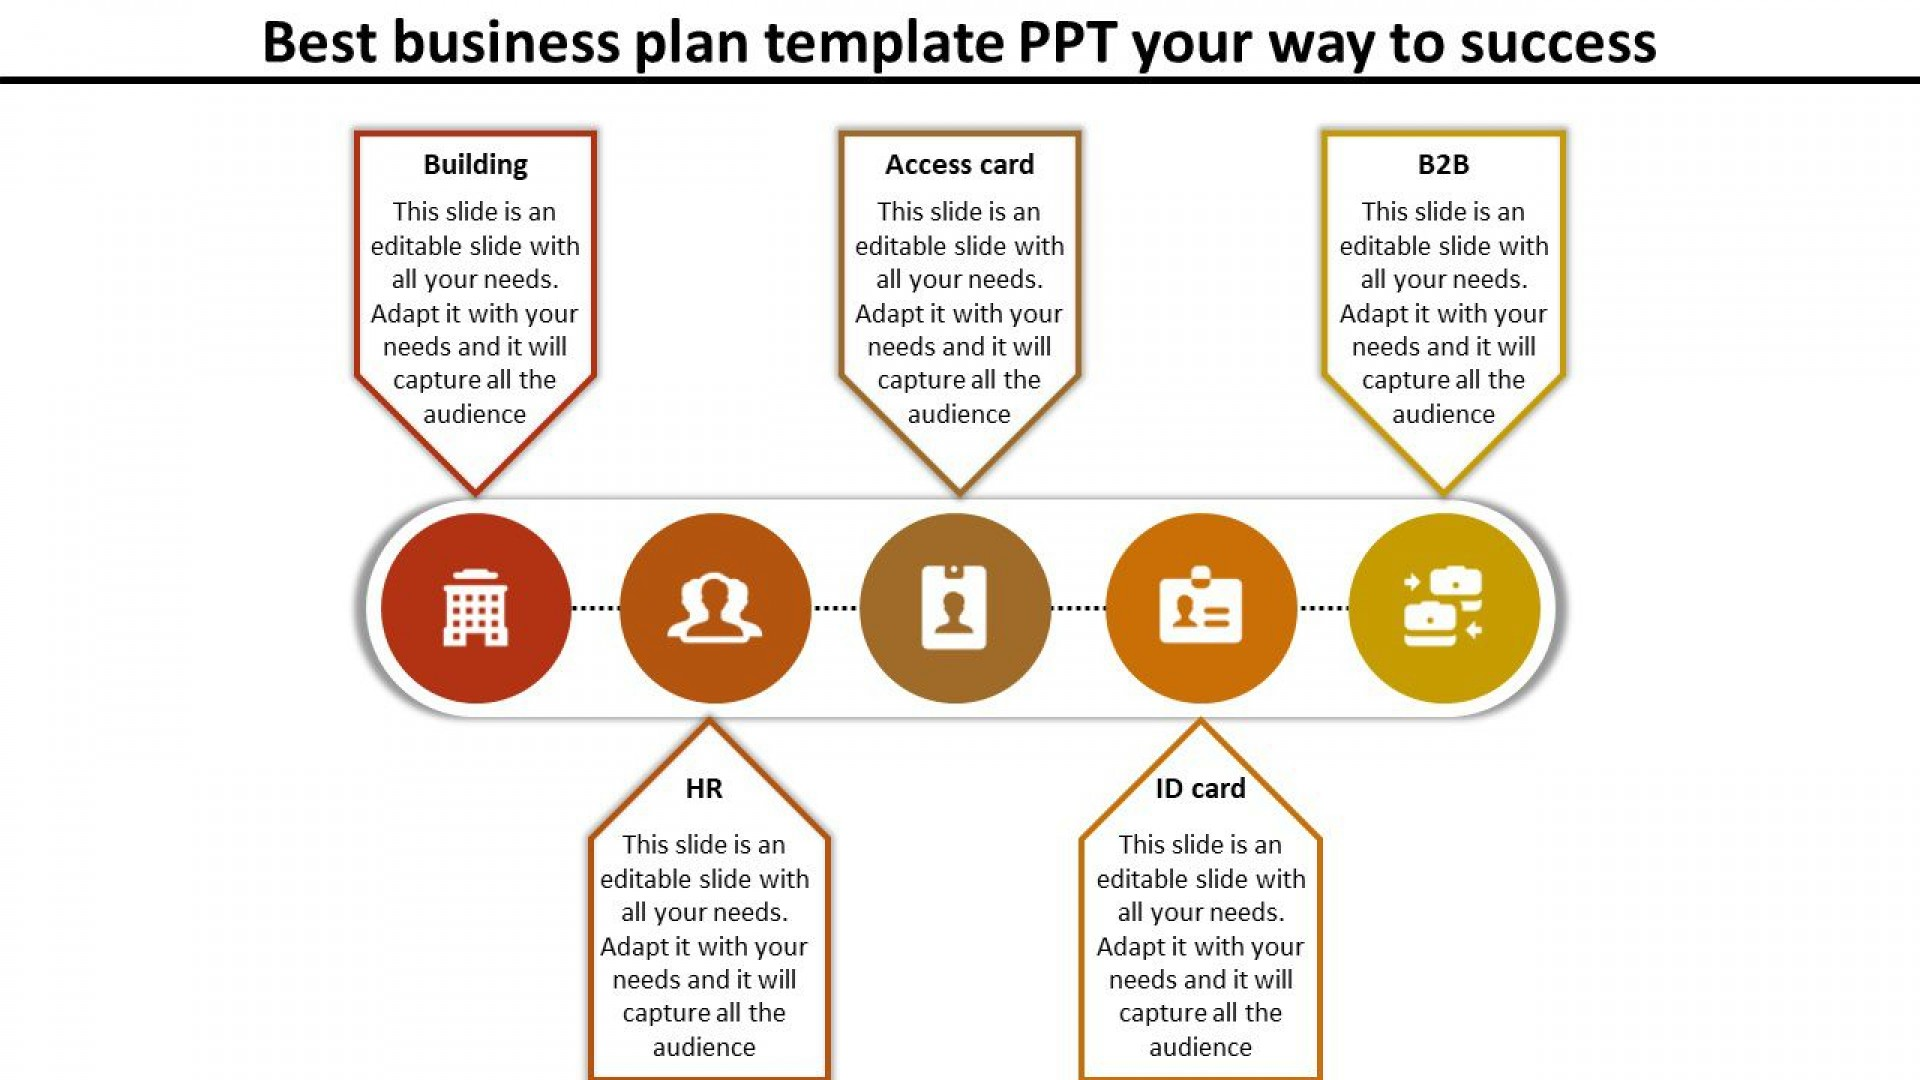 003 Shocking Best Busines Plan Template Highest Quality  Ppt Free Download1920